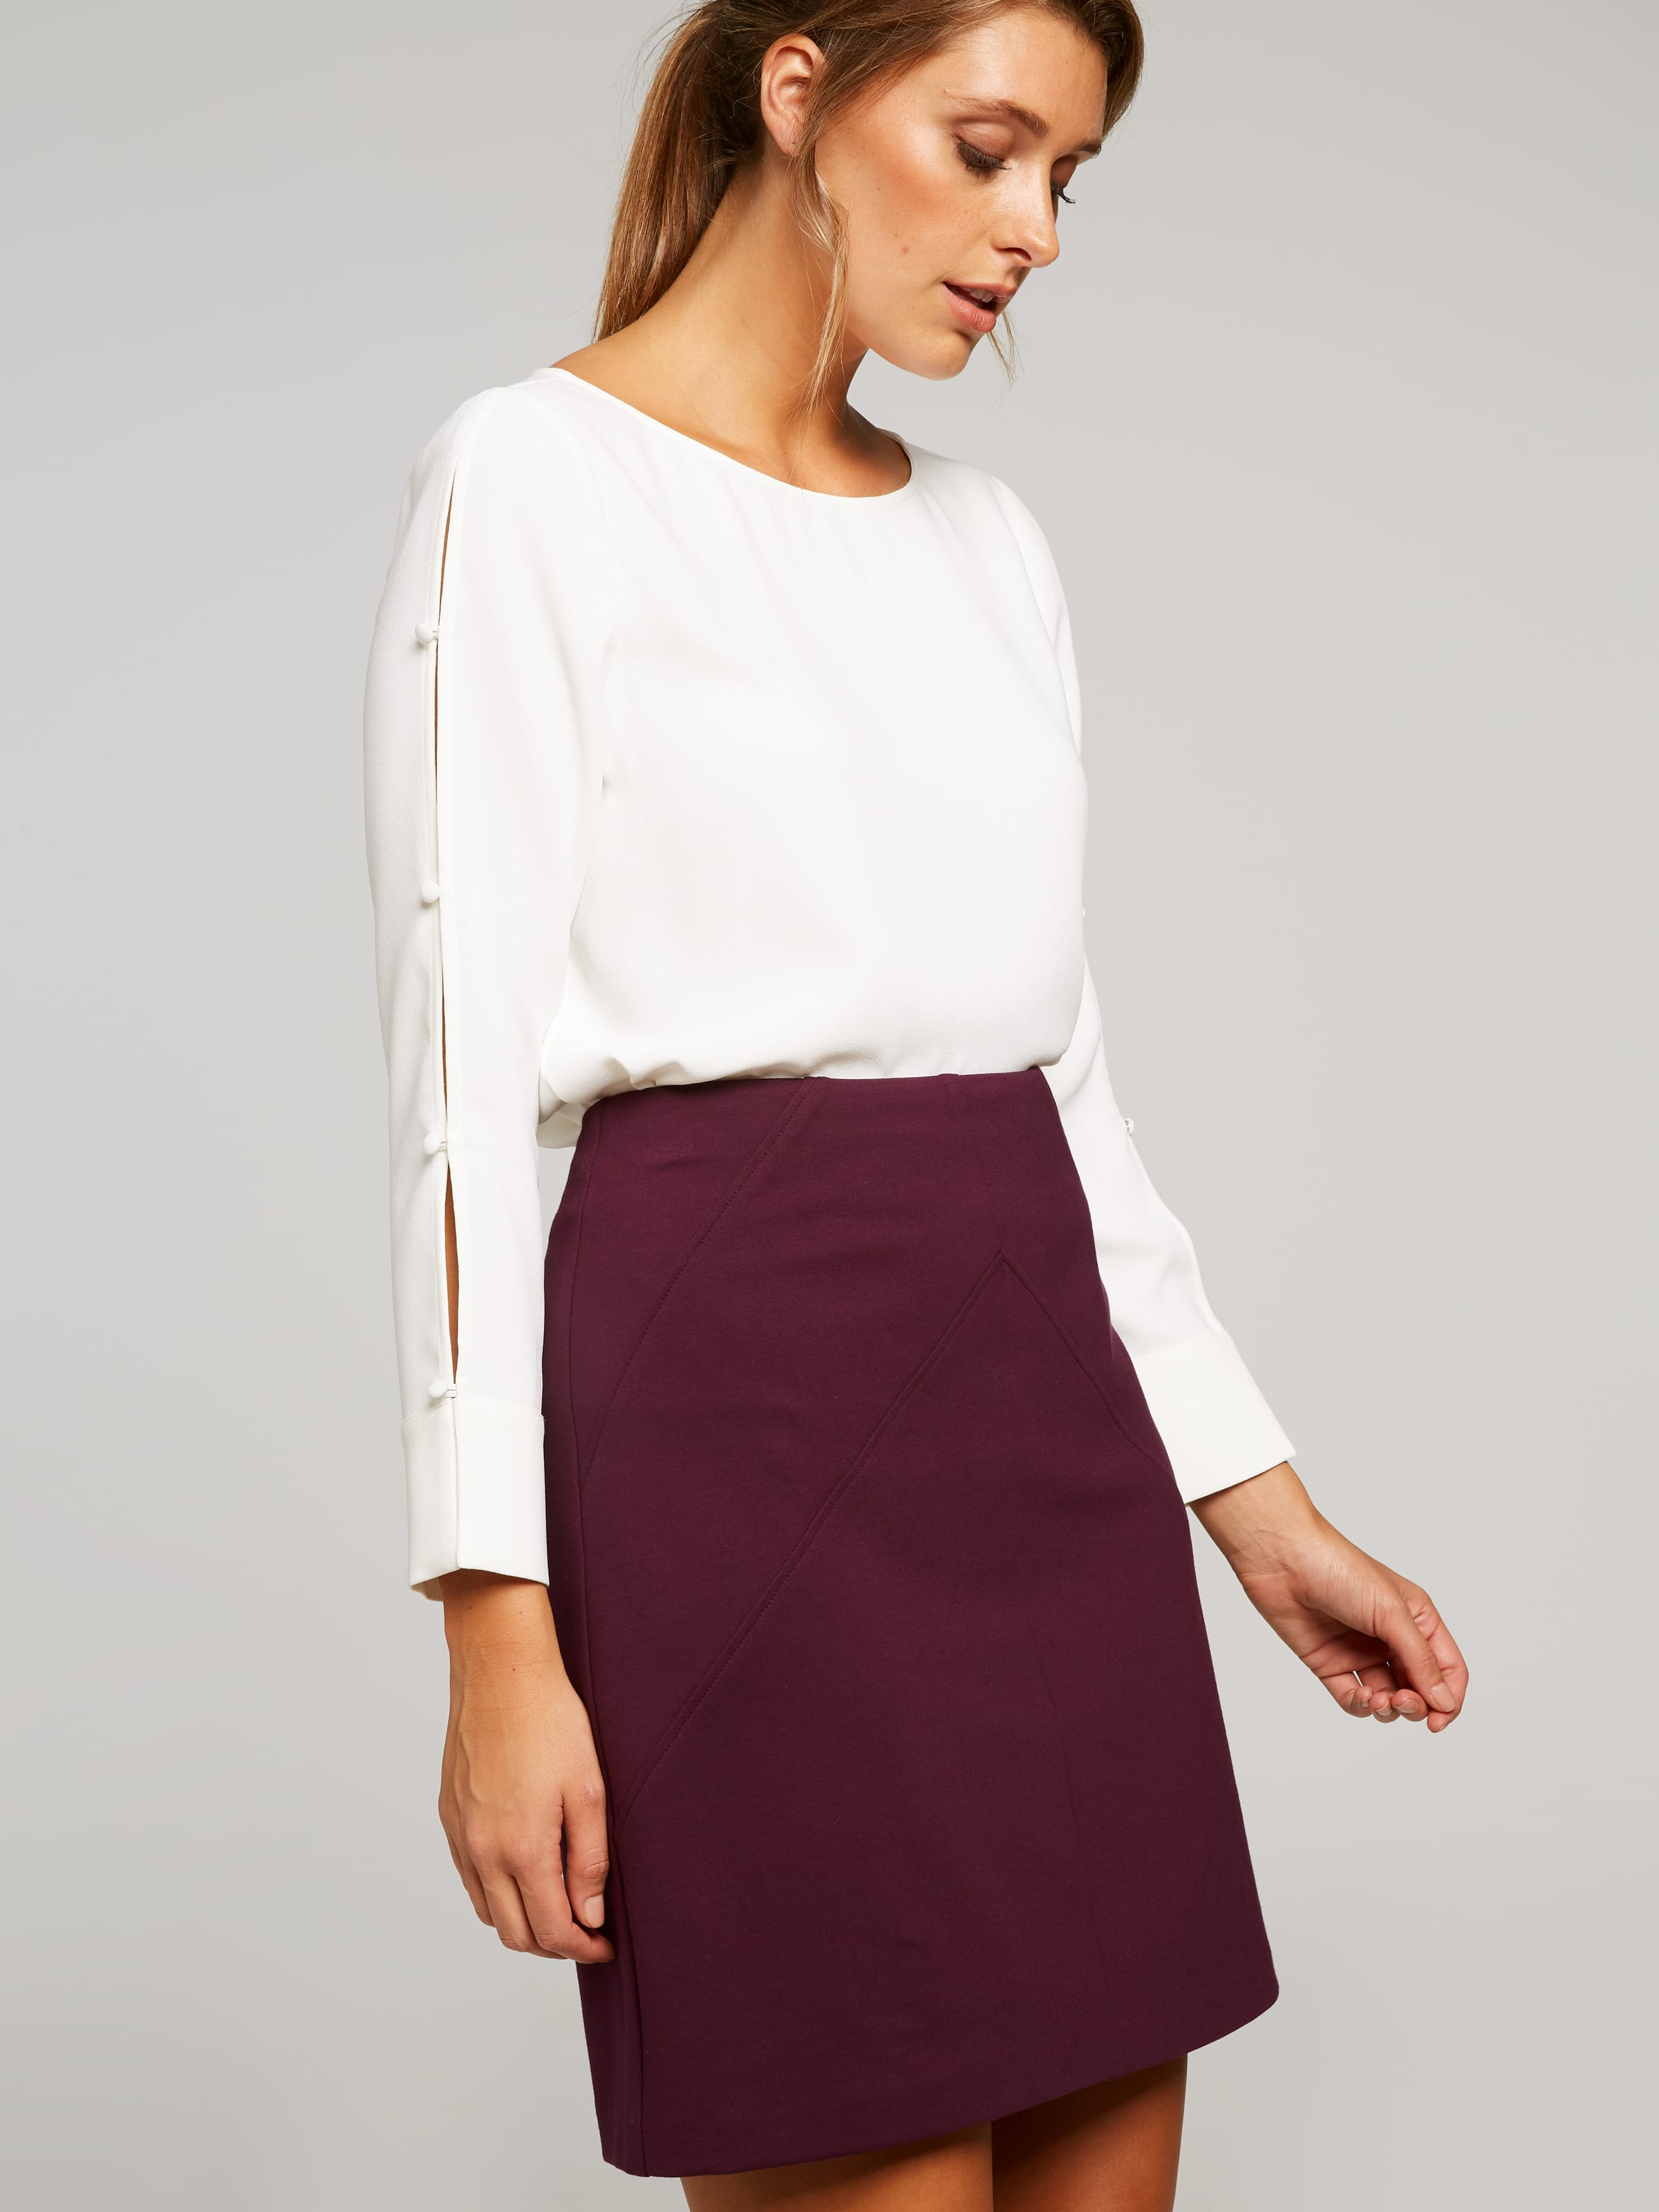 Part Of Our Core Ponte Range, This Slim Fitting Skirt Will Hug In You In All The Right Places. Stretchy Fabrication. Centre And Diagonal Seamfront. Zip Up Back. Easy To Pull On. Wear With Any Of Our Fashionable Tops To Take Youout From Work To Dinner.(Essential Plum, 6)